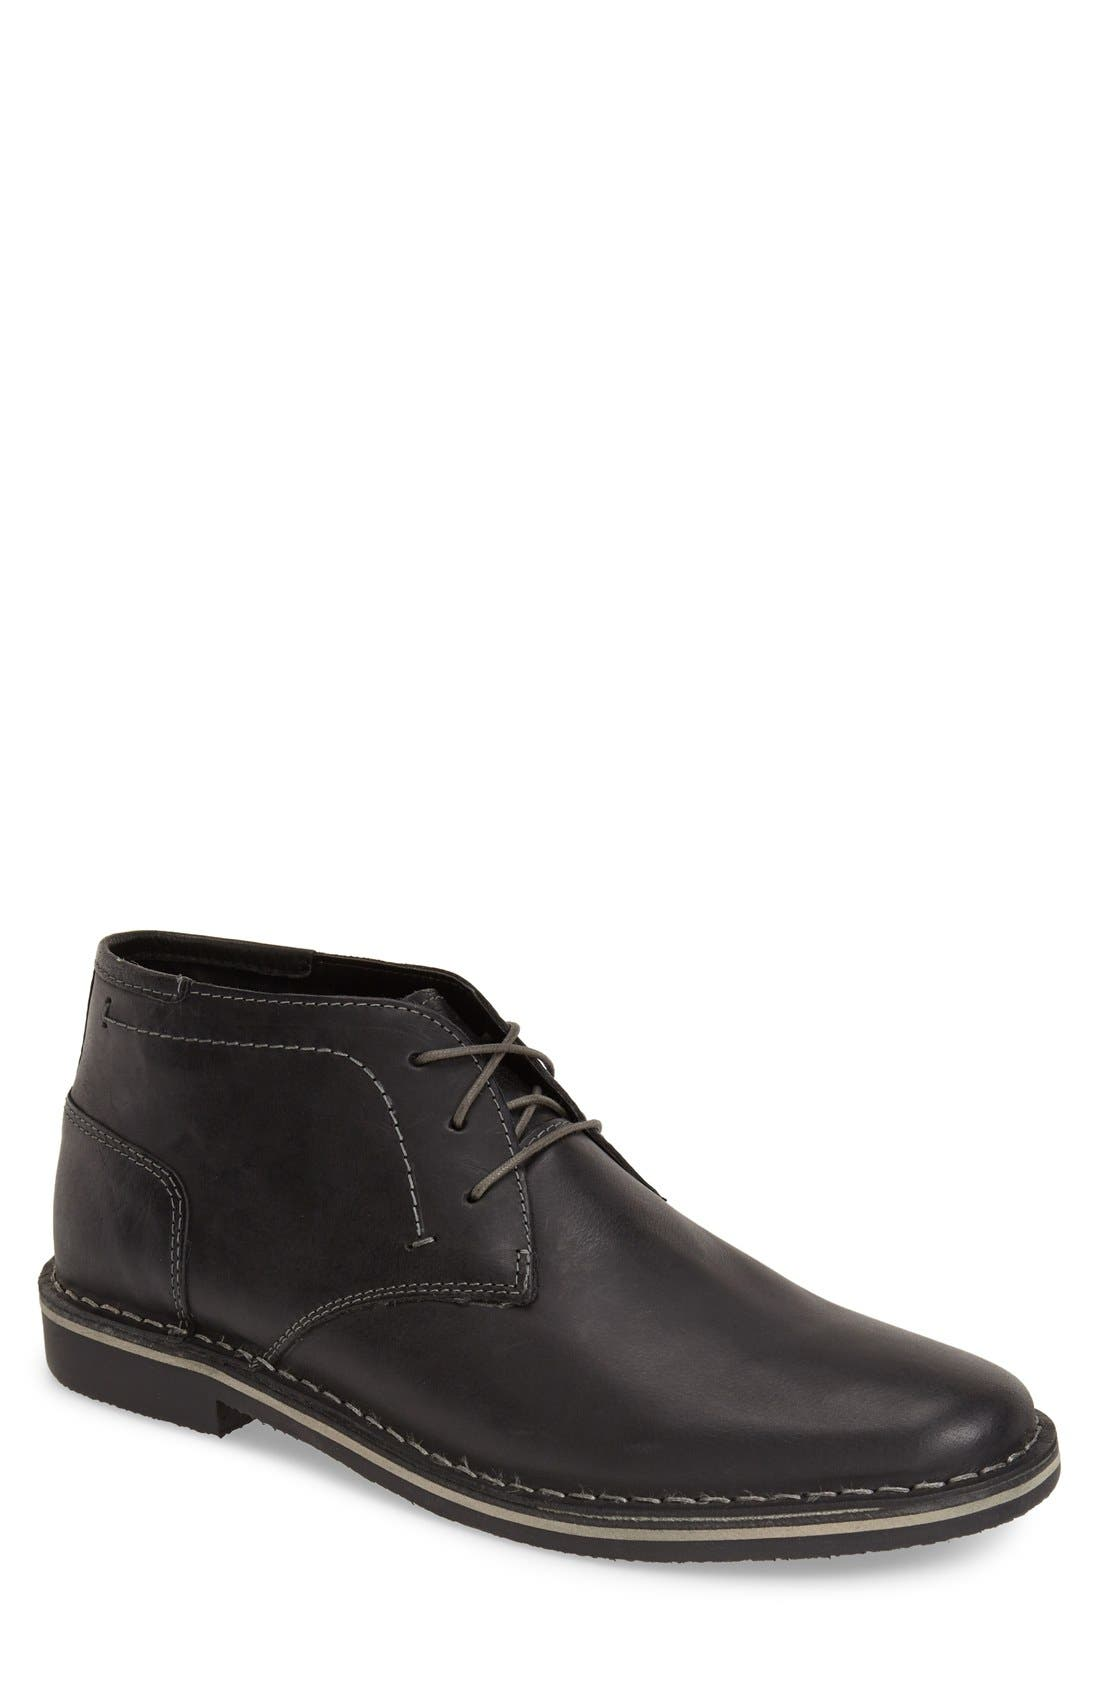 Main Image - Steve Madden 'Harken' Leather Chukka Boot (Men)